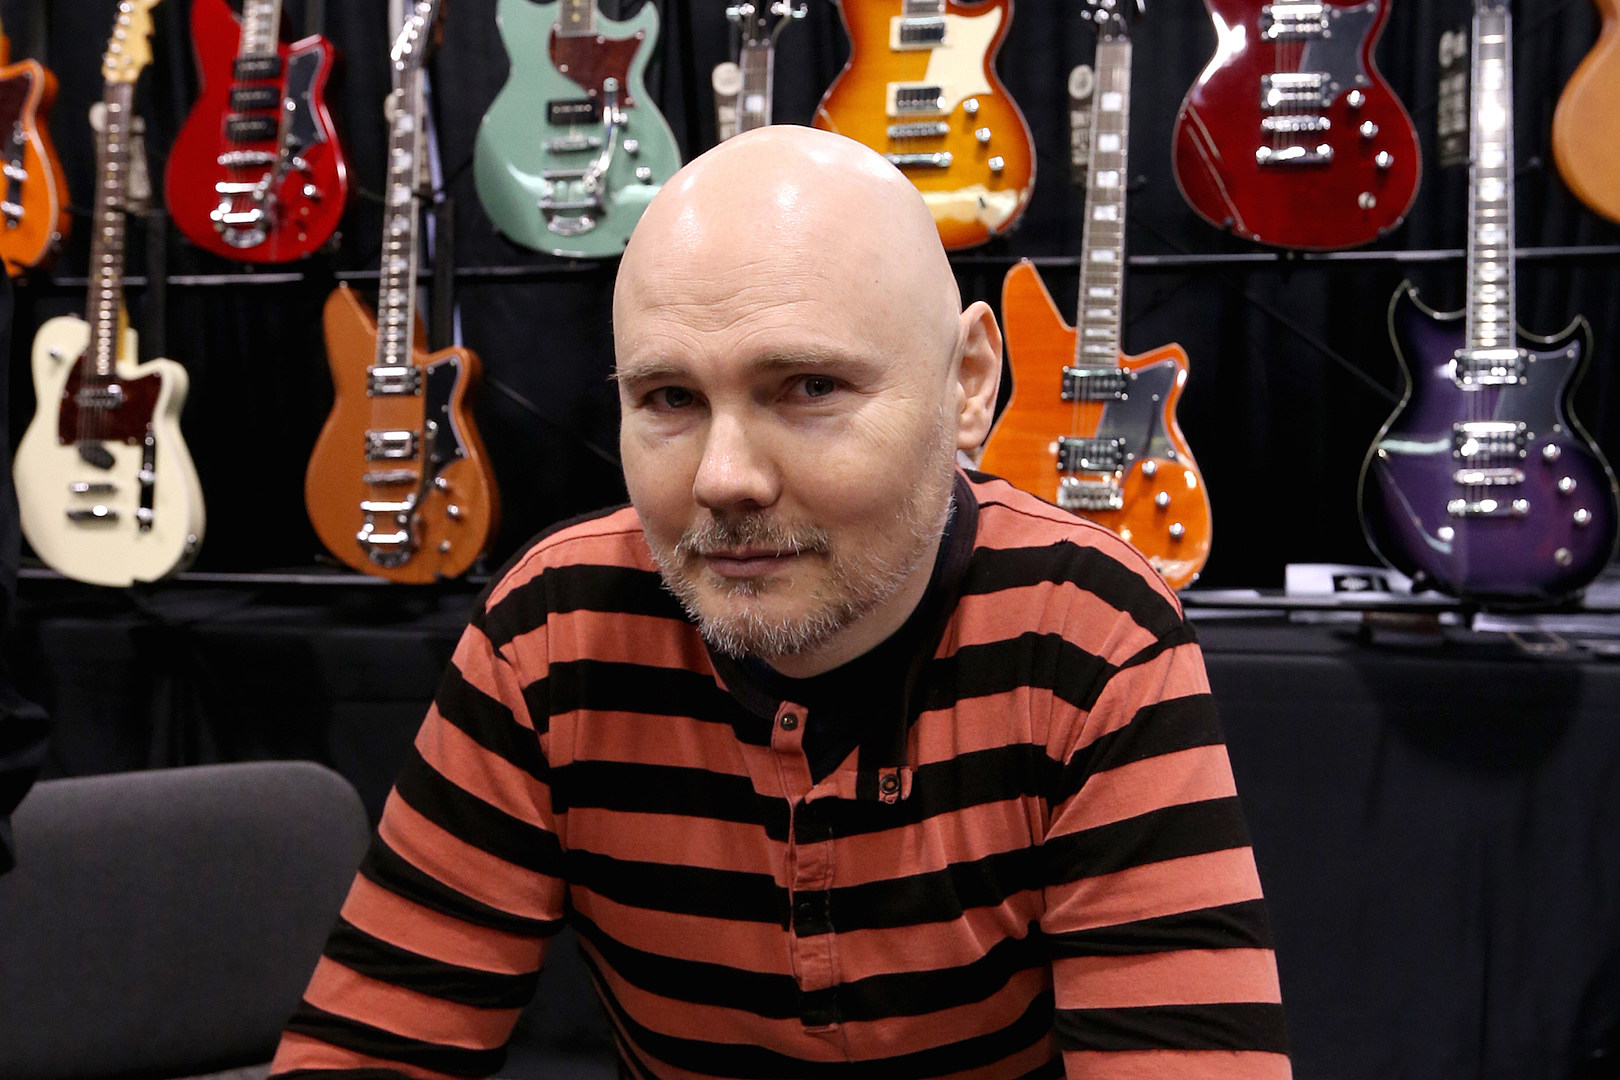 billy-corgan2018.jpg